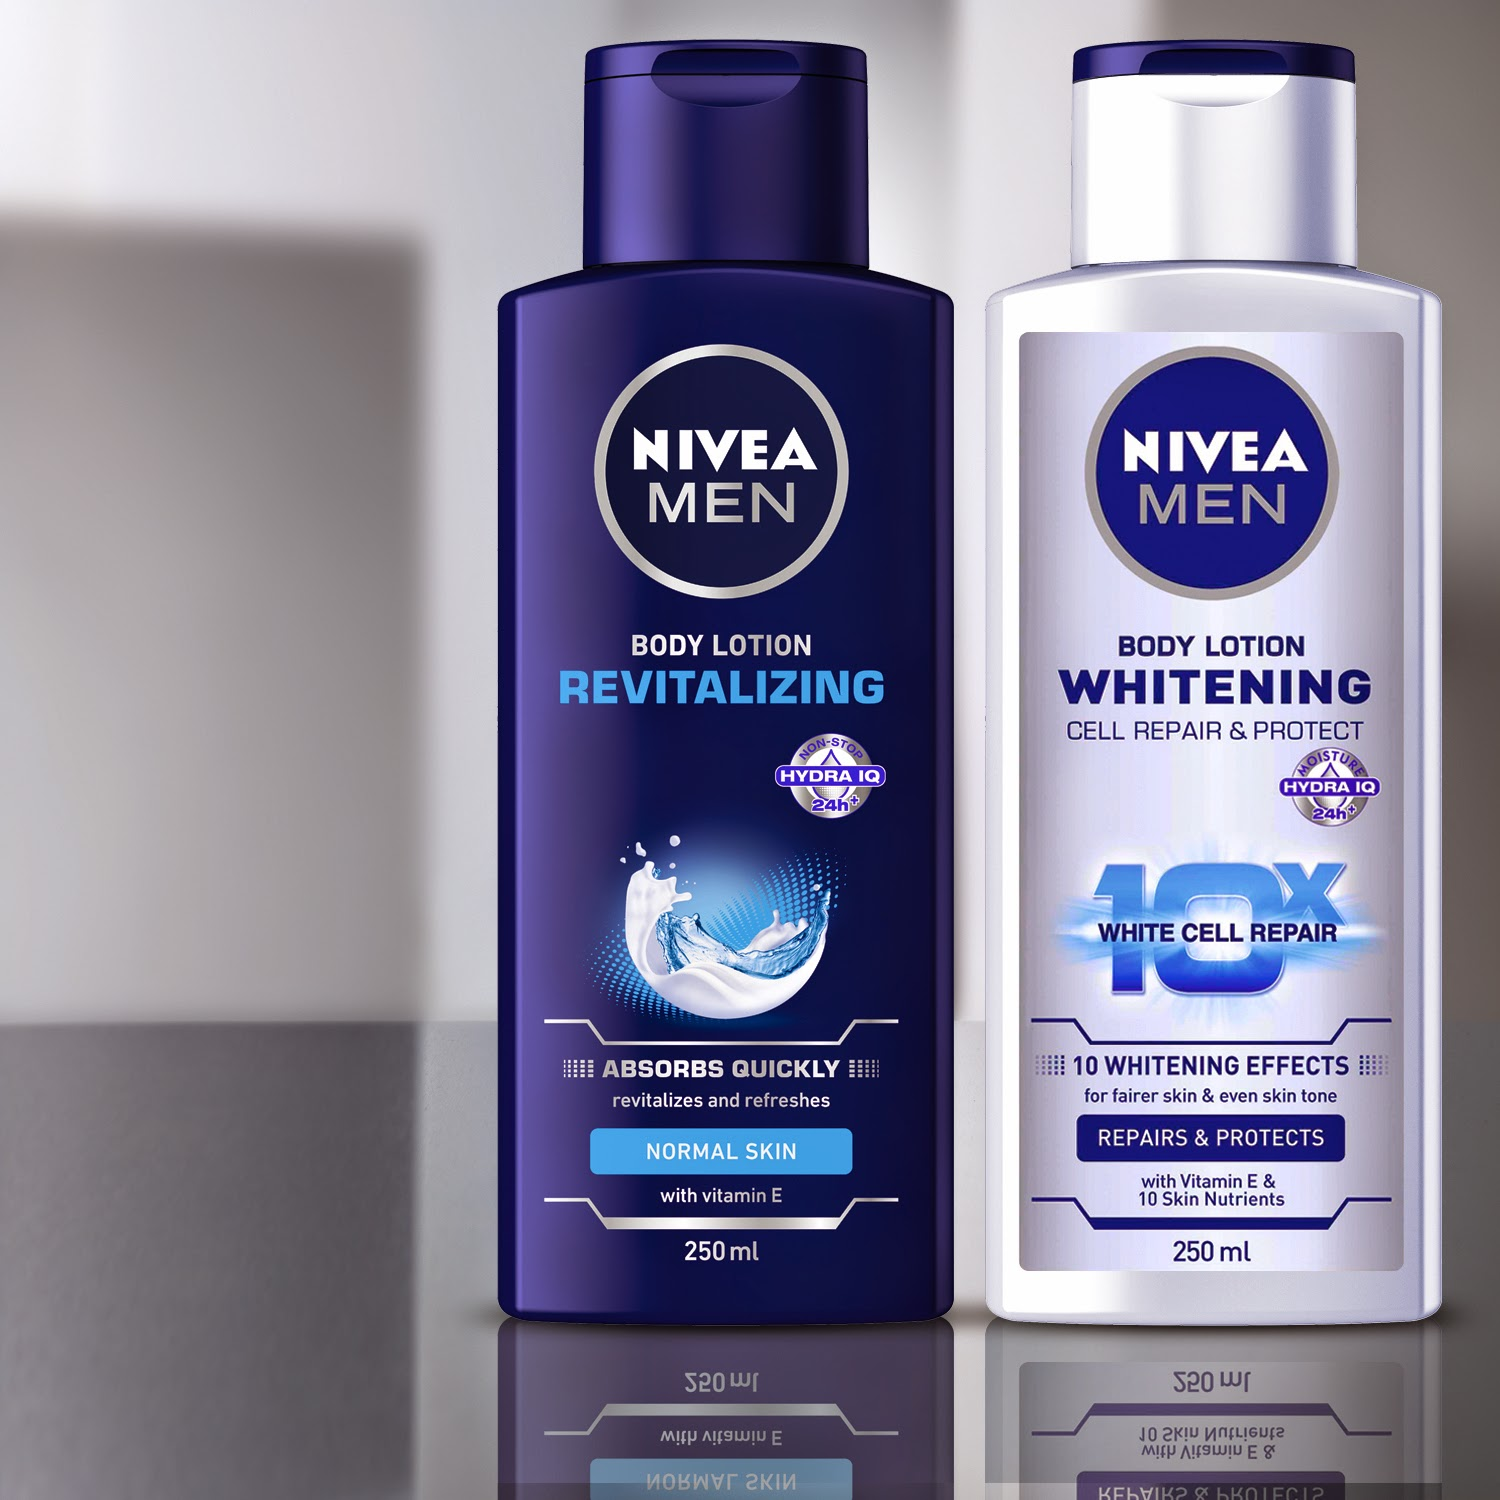 Nivea Men Helps With Guys Everyday Diskarte Hello Welcome To My Whitening Sun Lotion Achieve Skin That Looks Brighter And Feels Hydrated Apply Cell Repair Protect On Your Body This Provides The